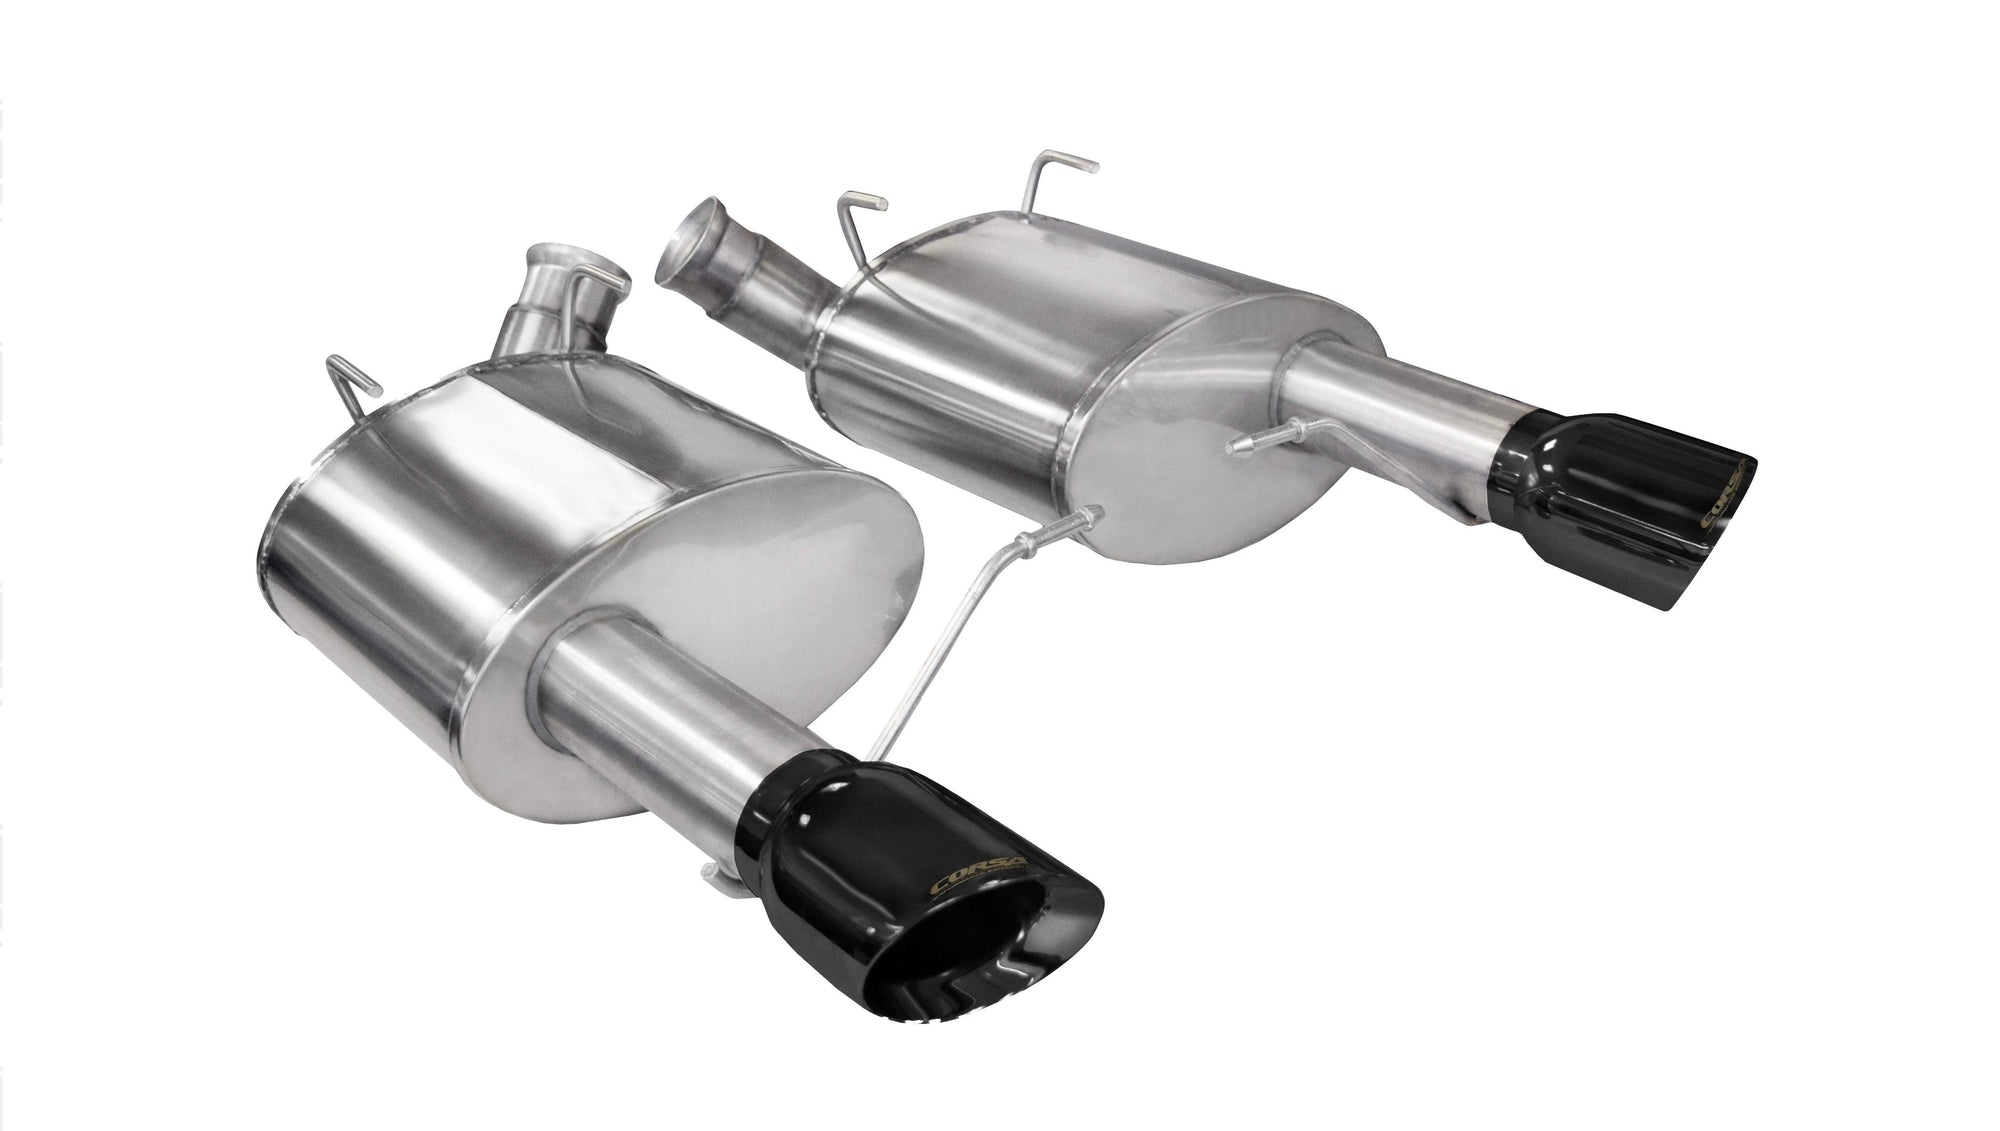 "CORSA PERFORMANCE Axle-Back Exhaust Polished / XTREME / Dual Rear - Single 4.0in 2011-2014 Ford Mustang GT/Boss 302 3.0"" Dual Rear Exit Axle-Back Exhaust System with 4.0"" Tips (14317) Xtreme Sound Level"